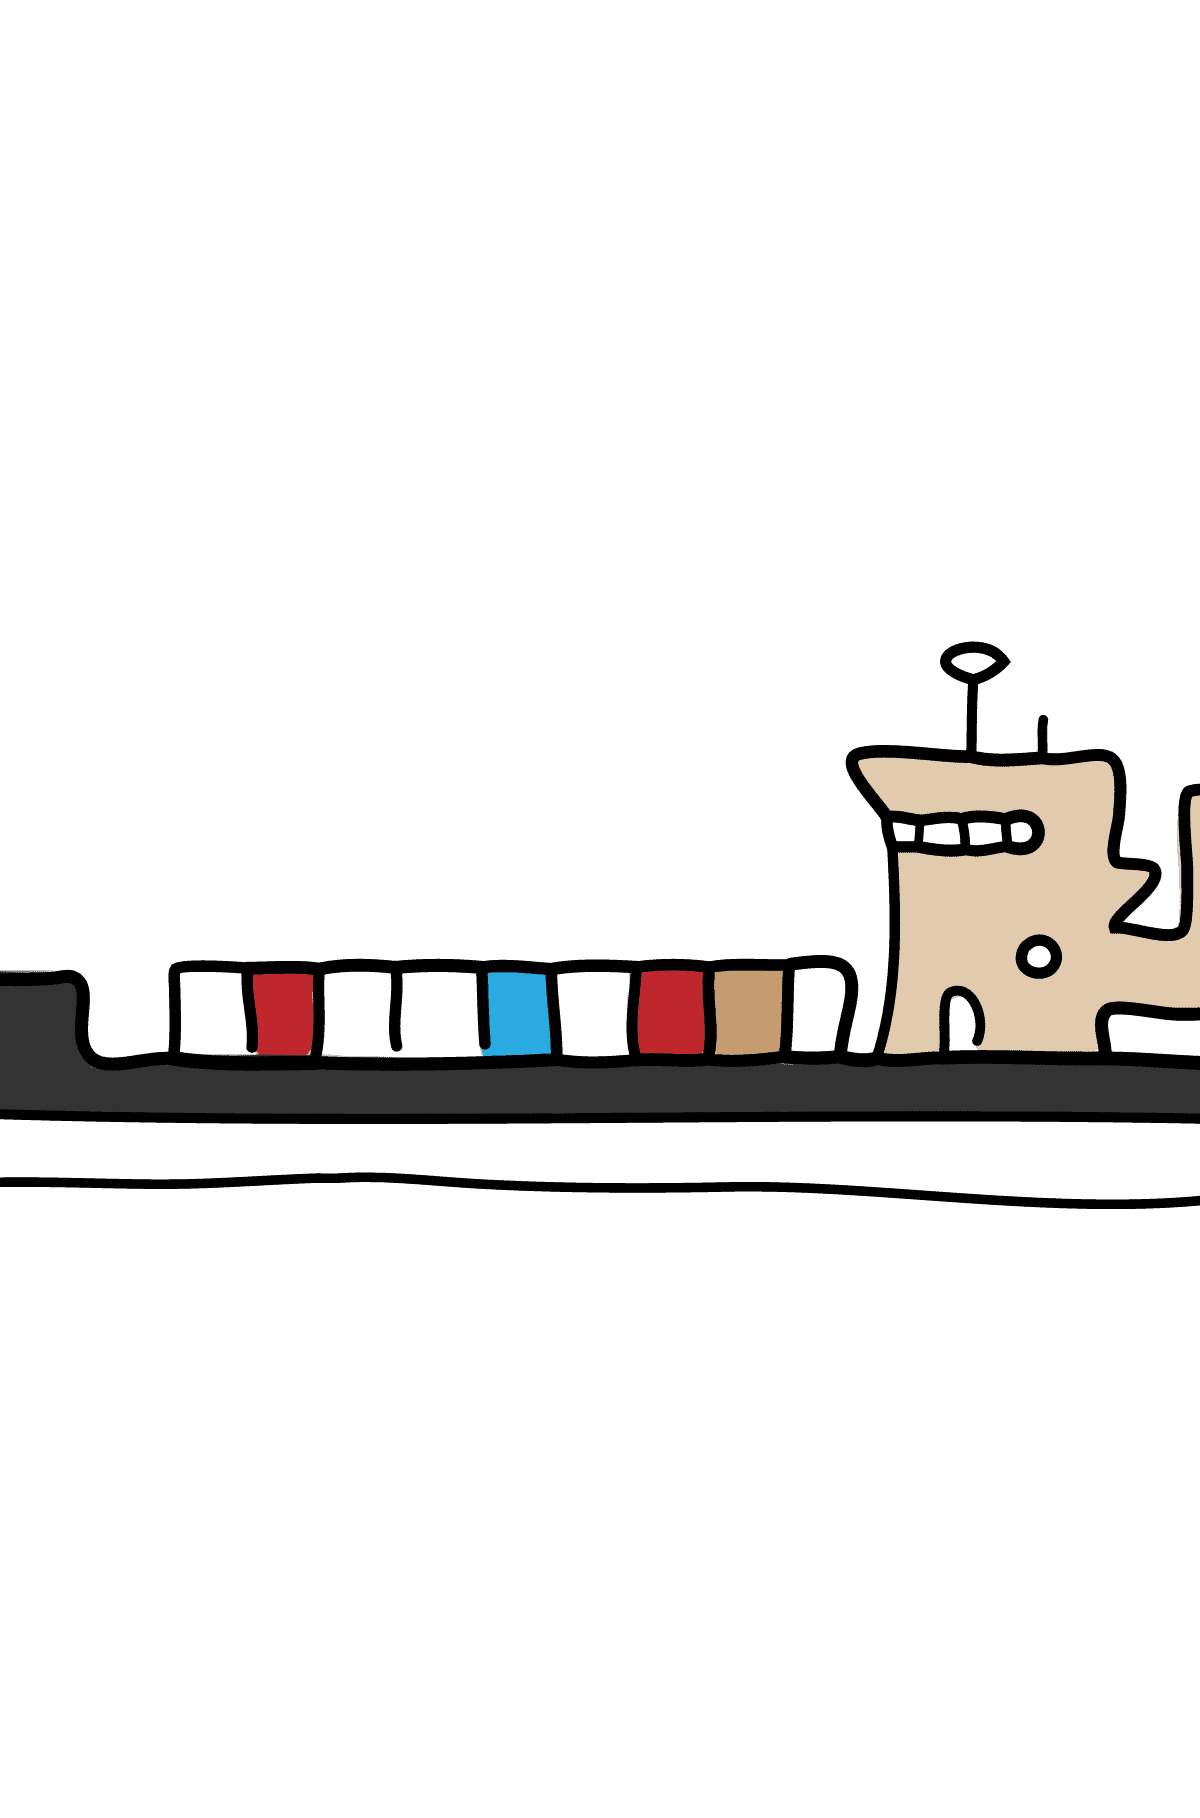 Coloring Page - A Dry Cargo Barge - Coloring Pages for Children